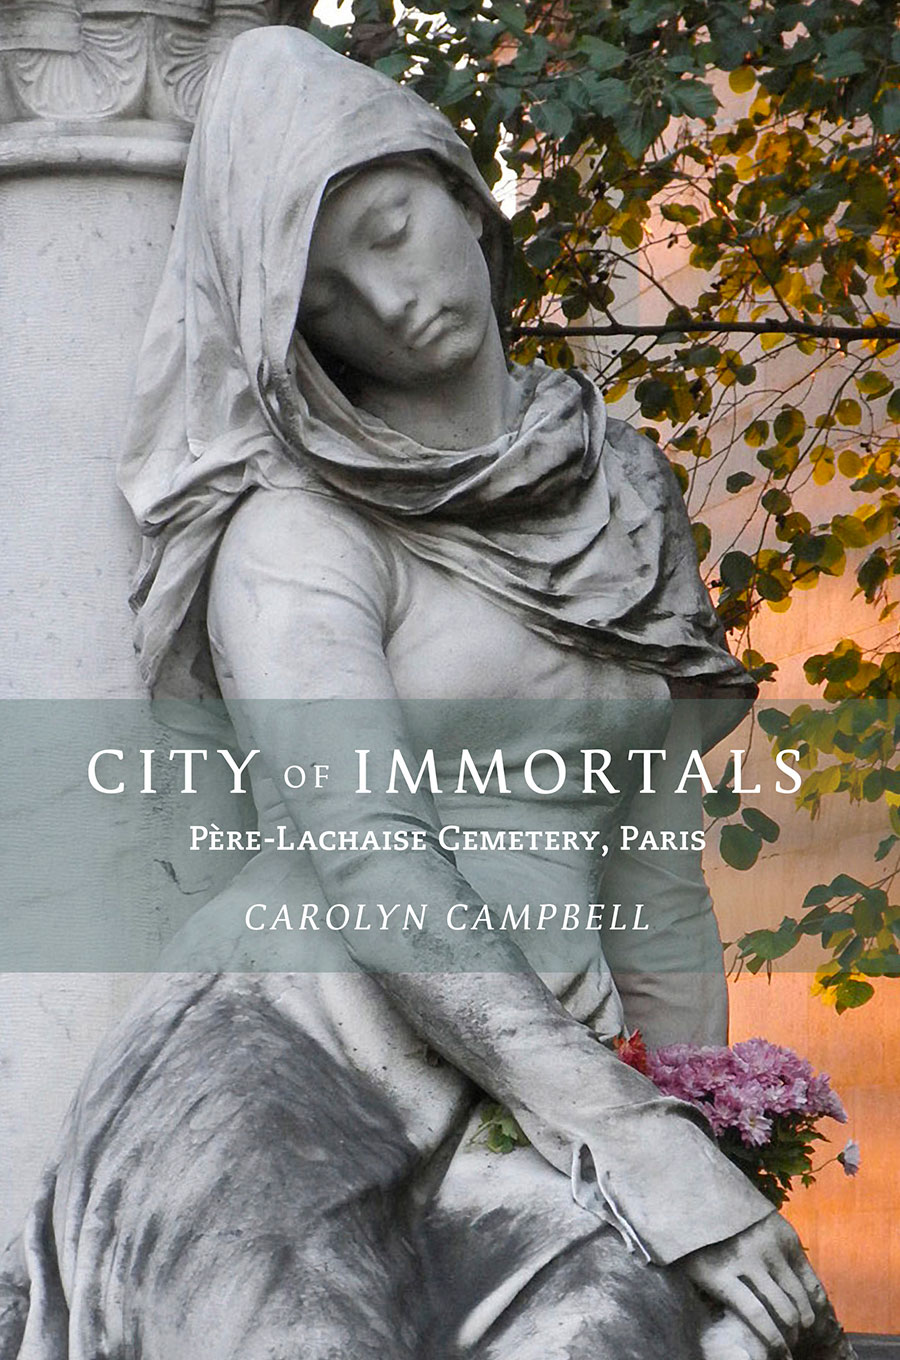 Front cover of City of Immortals Book book by Carolyn Campbell